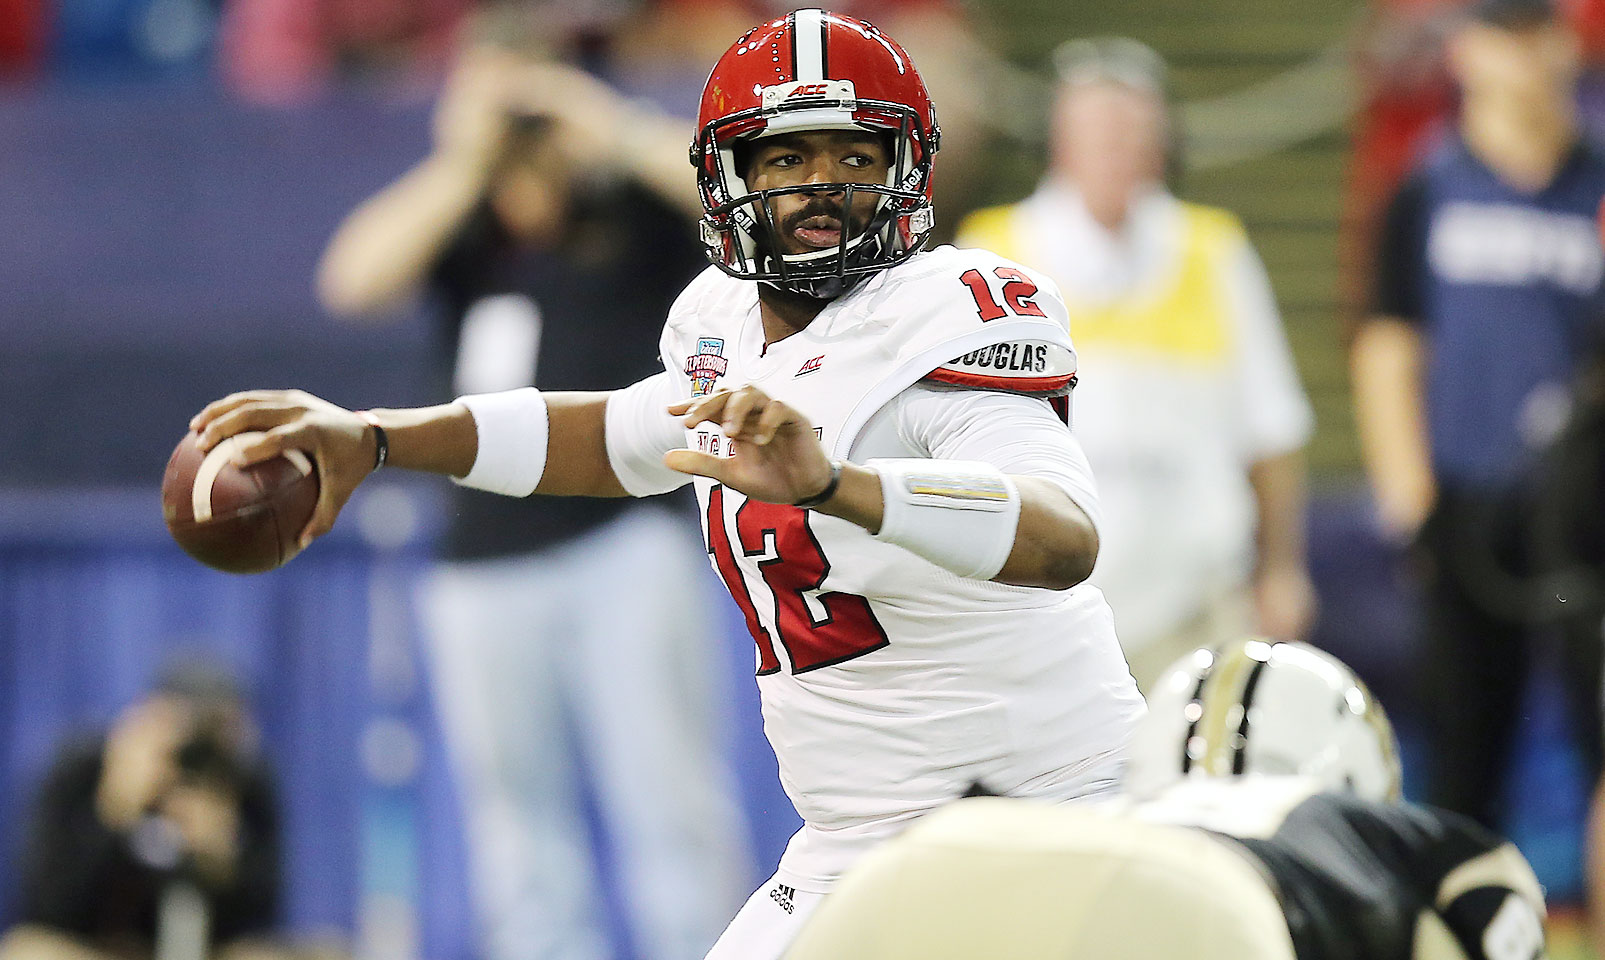 The former Florida passer was given the keys to the Wolfpack offense last season after sitting out 2013. Brissett responded with 23 touchdowns and over 3,000 yards combined running and throwing. His talent as a dual-threat helped N.C. State improve by five wins last season and could make the Wolfpack a tough conference foe in '15.